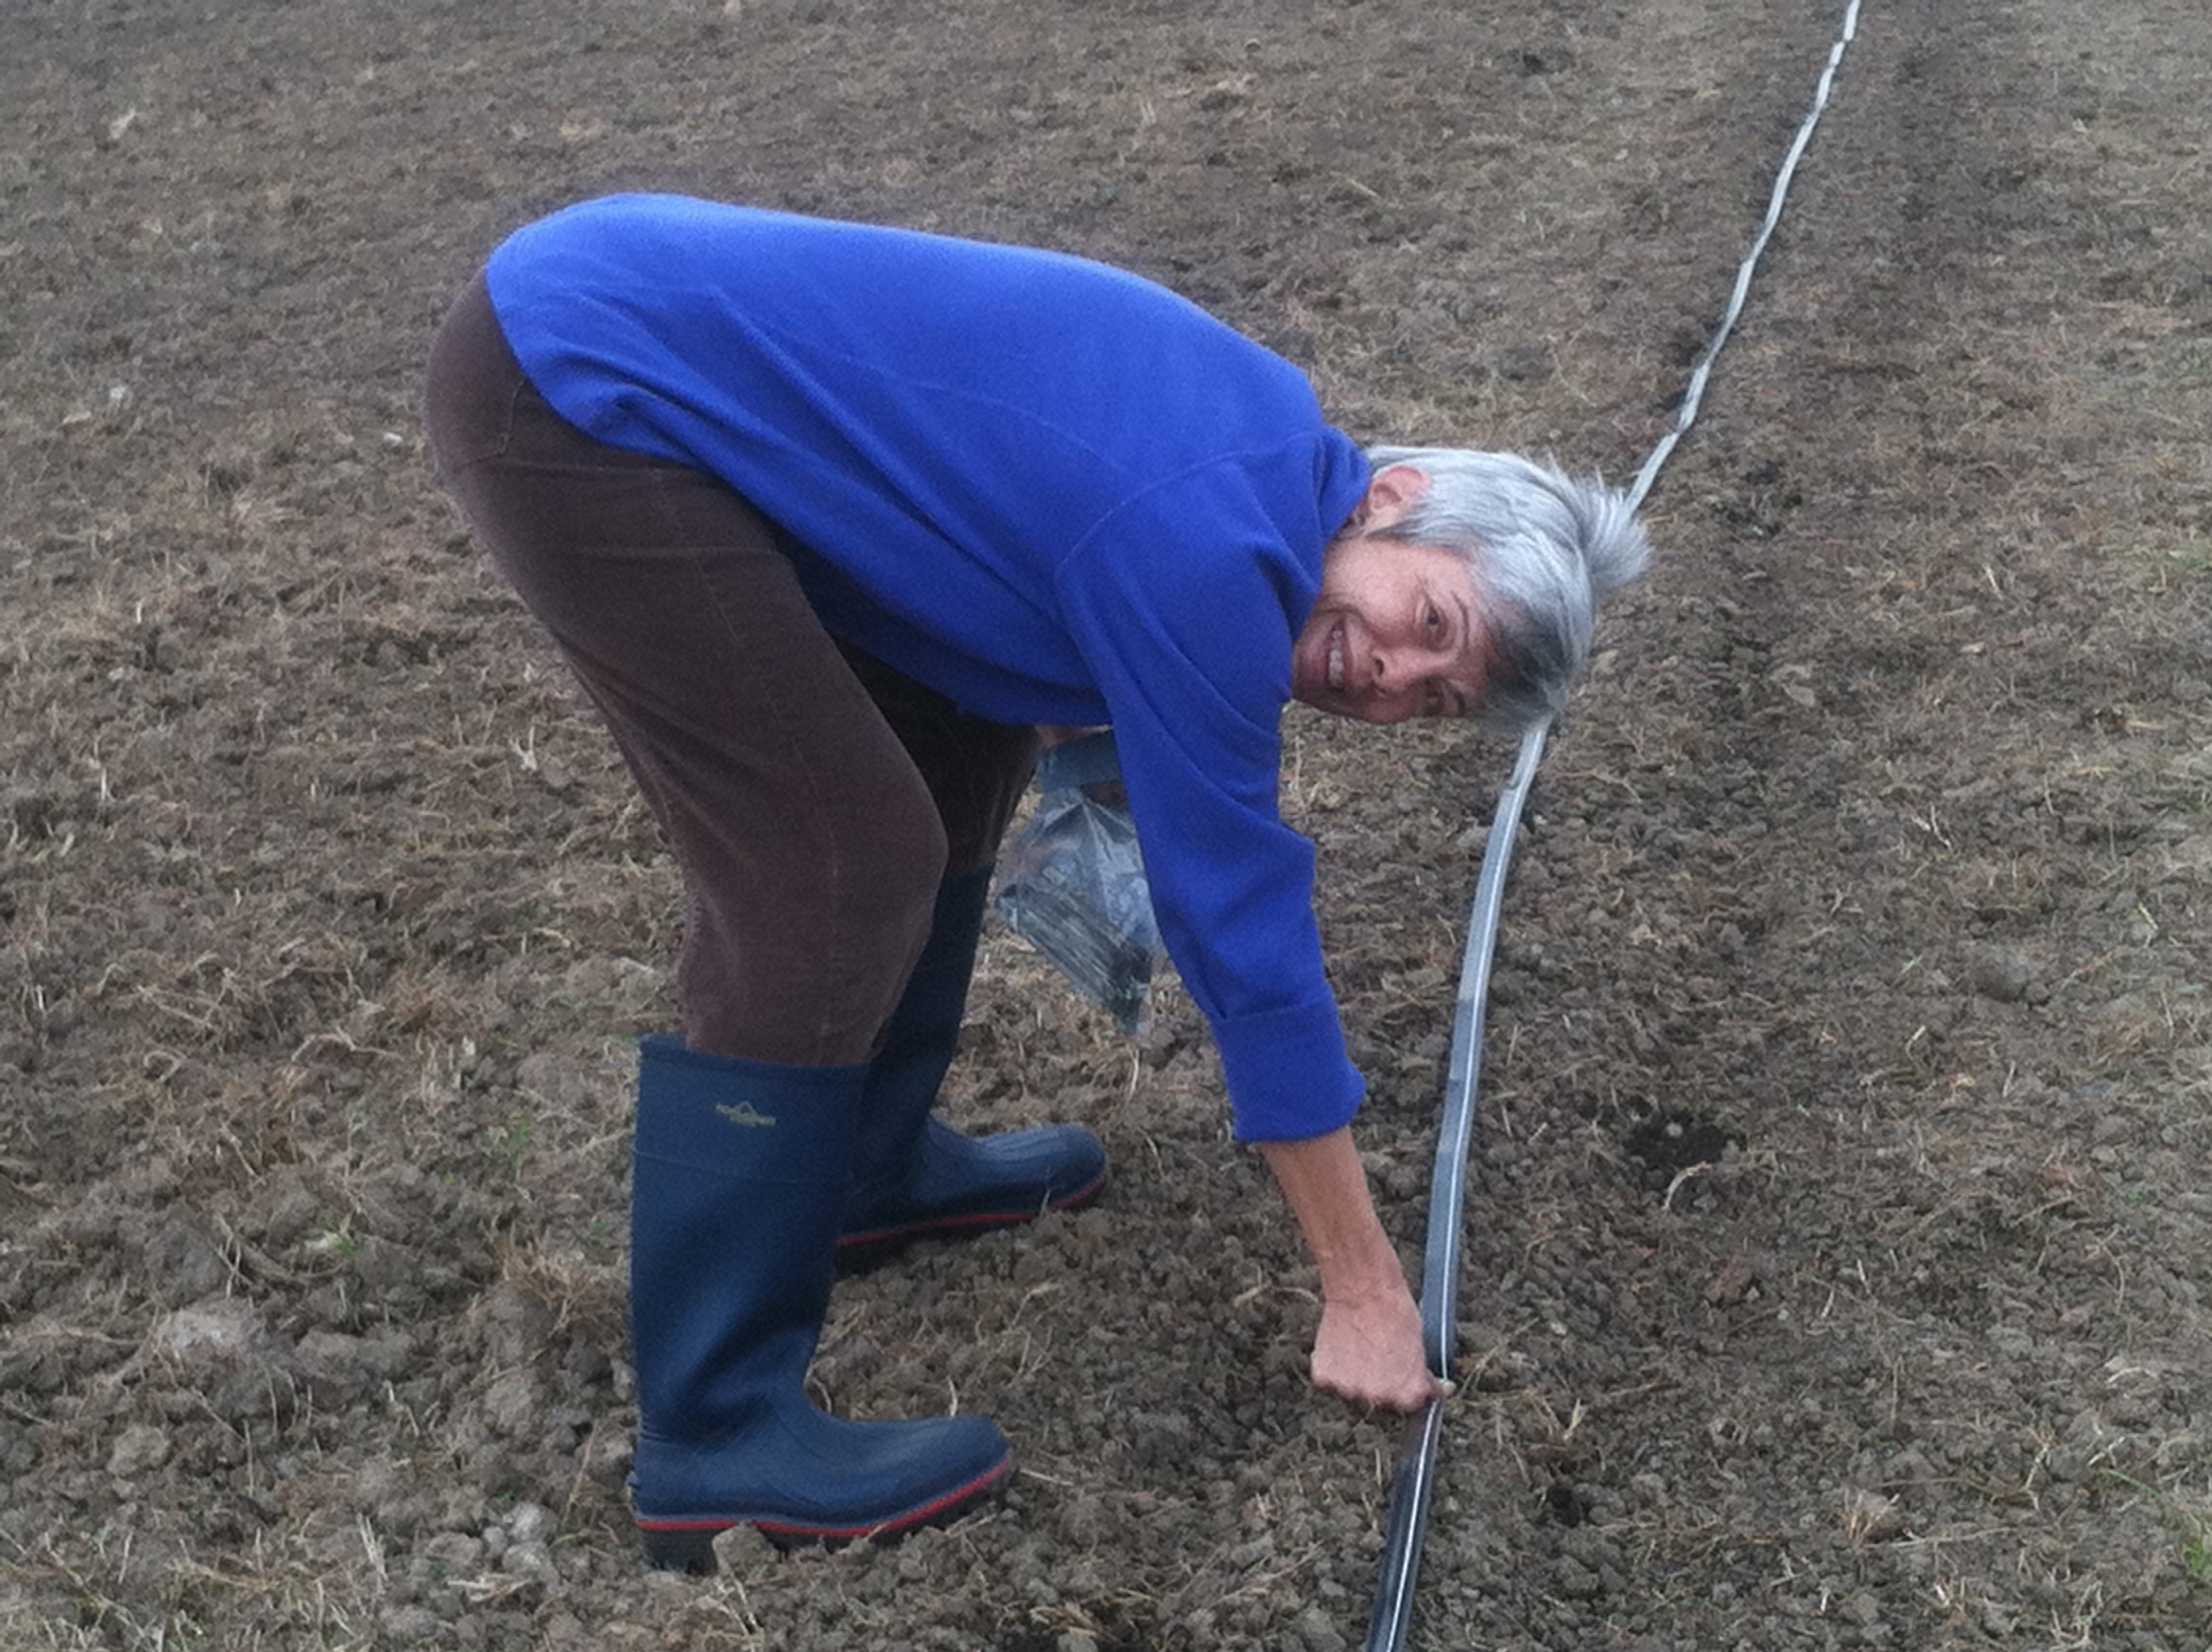 My little ma, pinning down the tape to keep it in place.